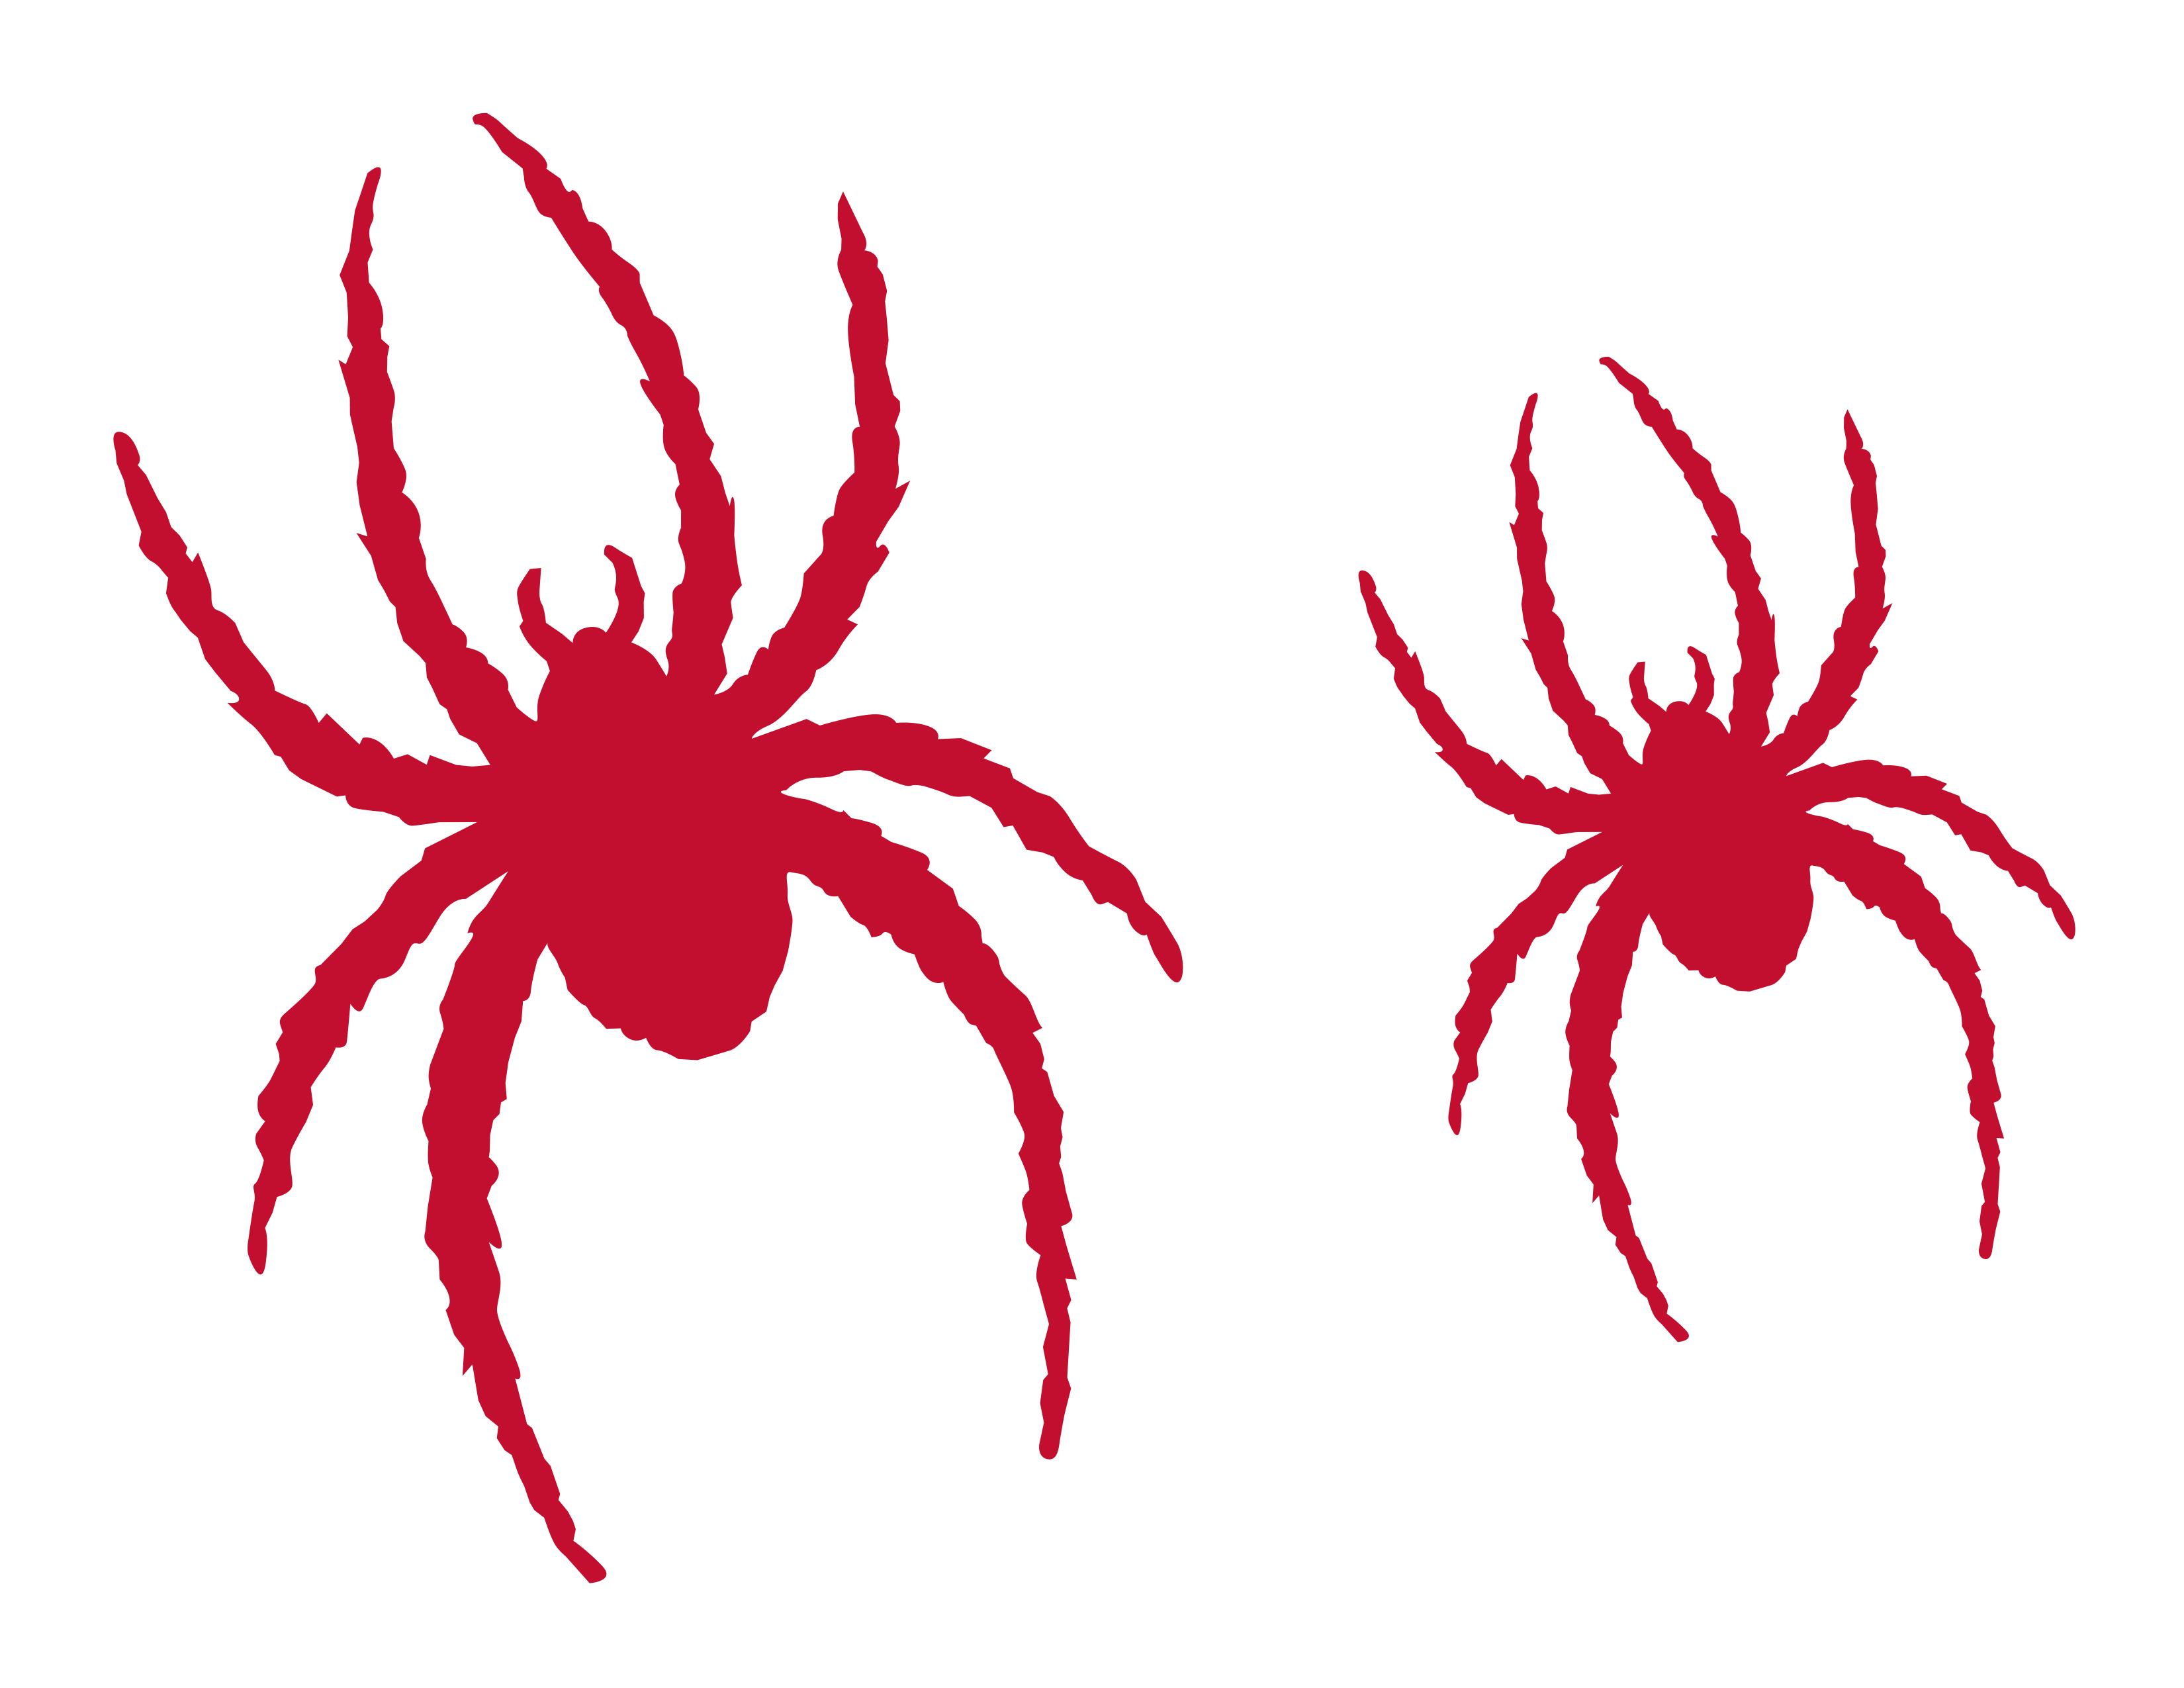 Small red spider